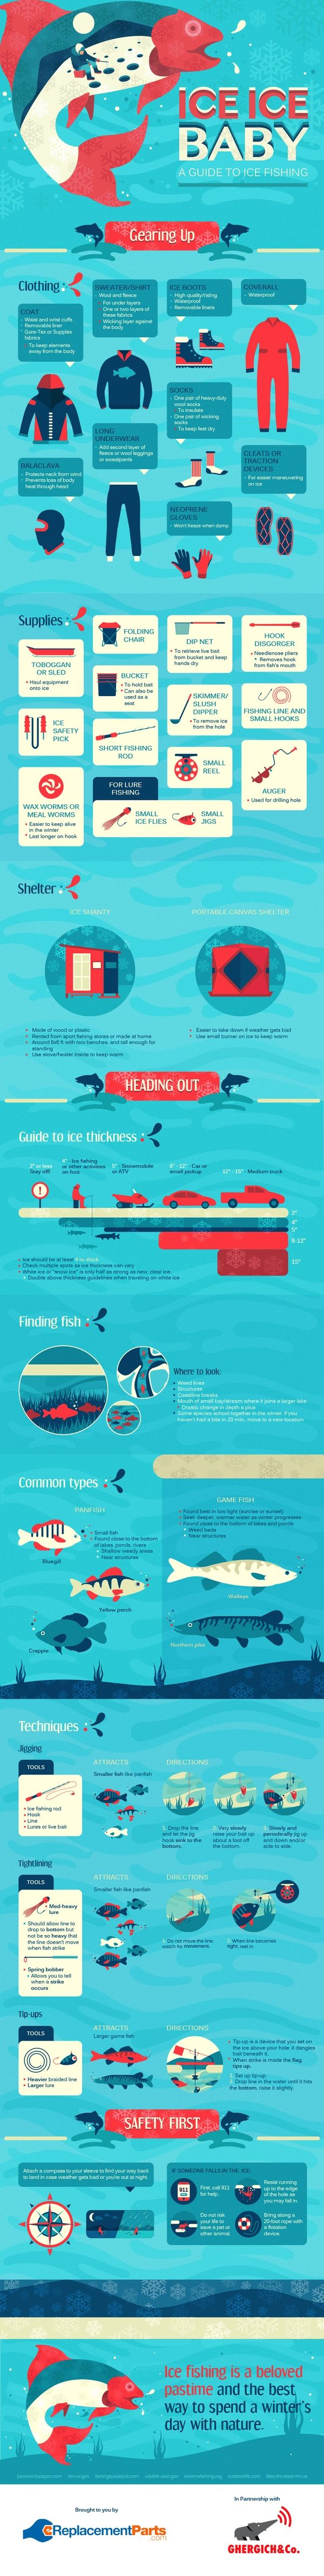 If you're new to #ice #fishing, or need a refresher, here's the complete guide to help you catch that big #fish